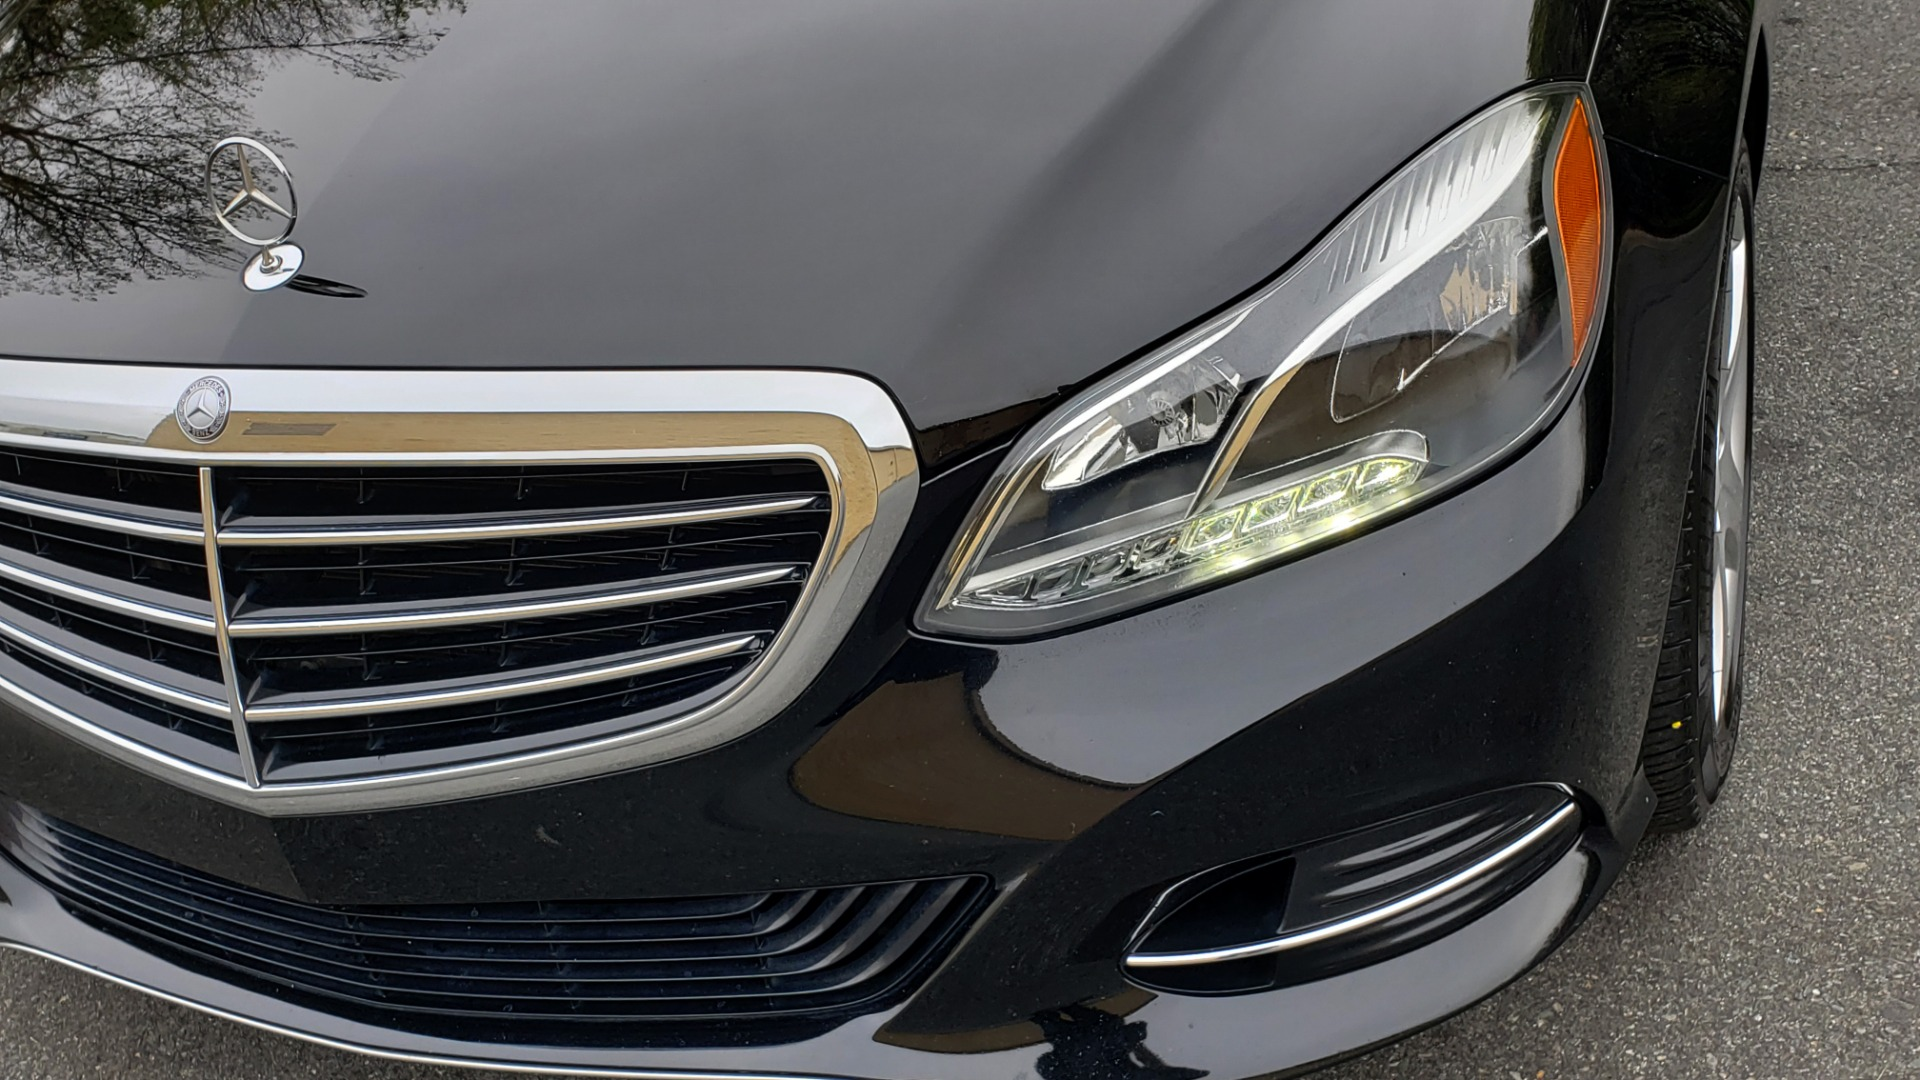 Used 2014 Mercedes-Benz E-Class E 350 4MATIC PREMIUM / NAV / SUNROOF / REARVIEW / 3-ROW for sale Sold at Formula Imports in Charlotte NC 28227 25